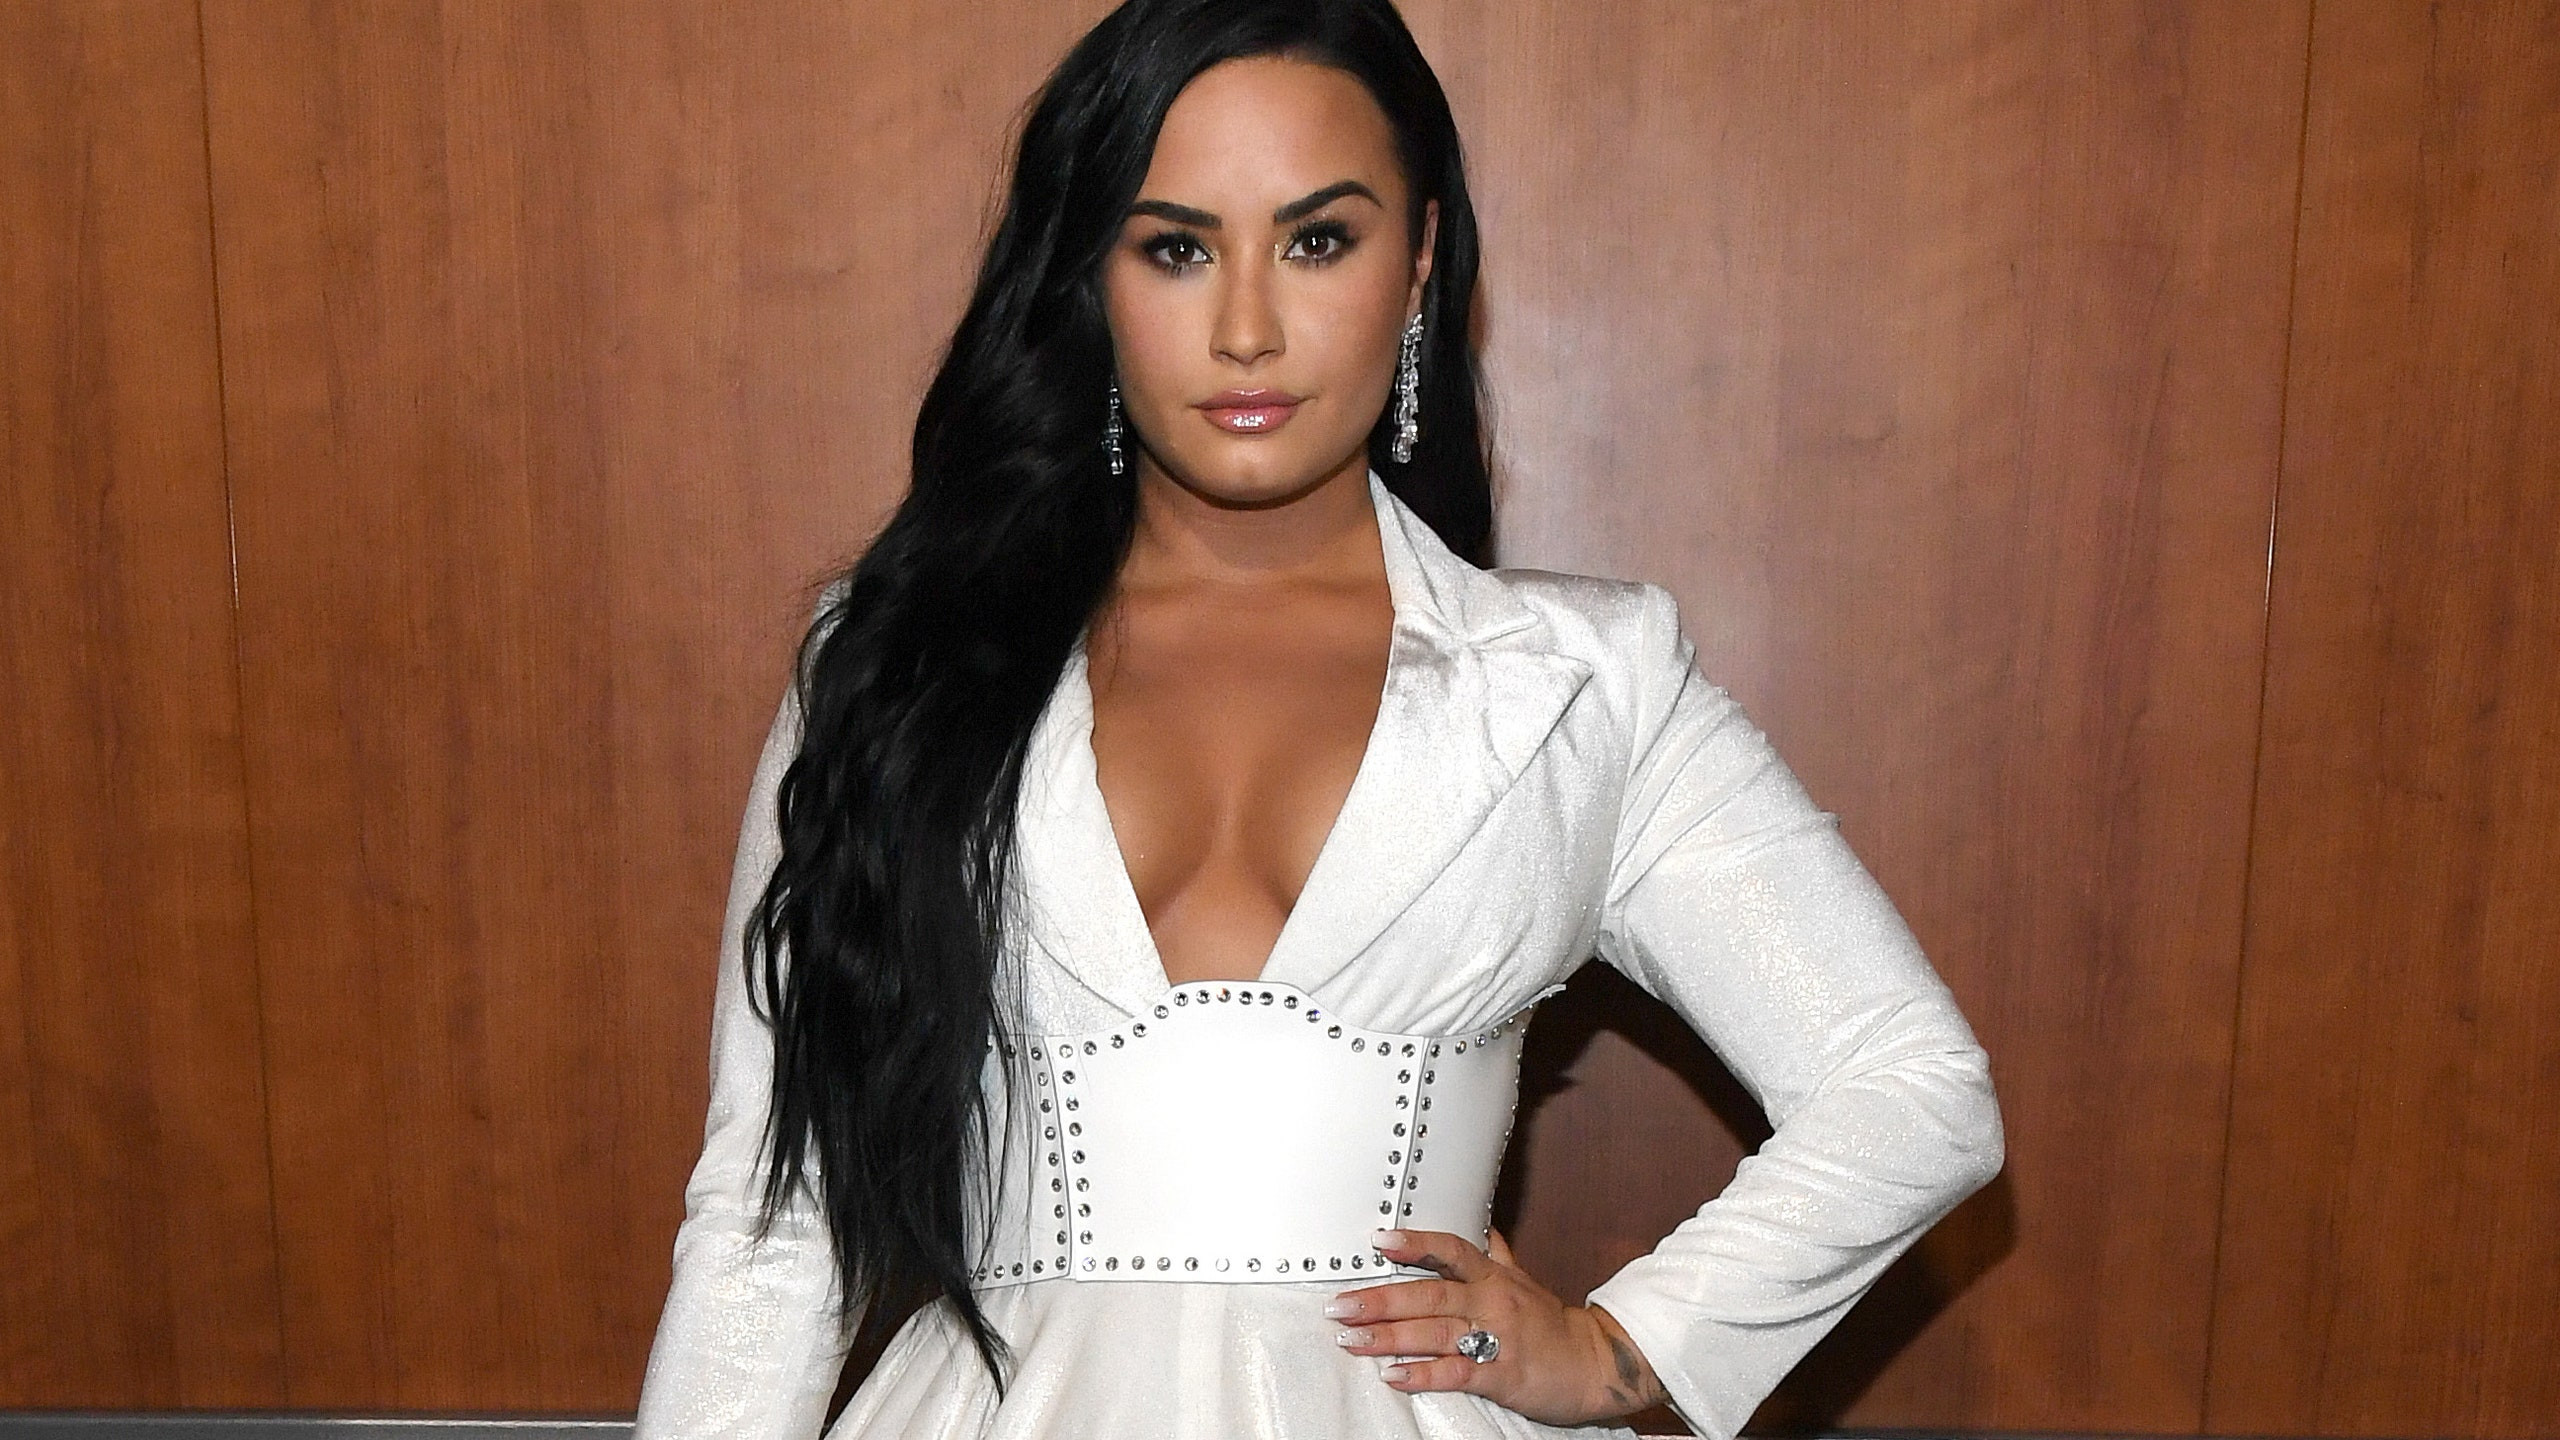 I had three strokes and a heart attack after 2018 overdose - Demi Lovato opens up on struggle with addiction